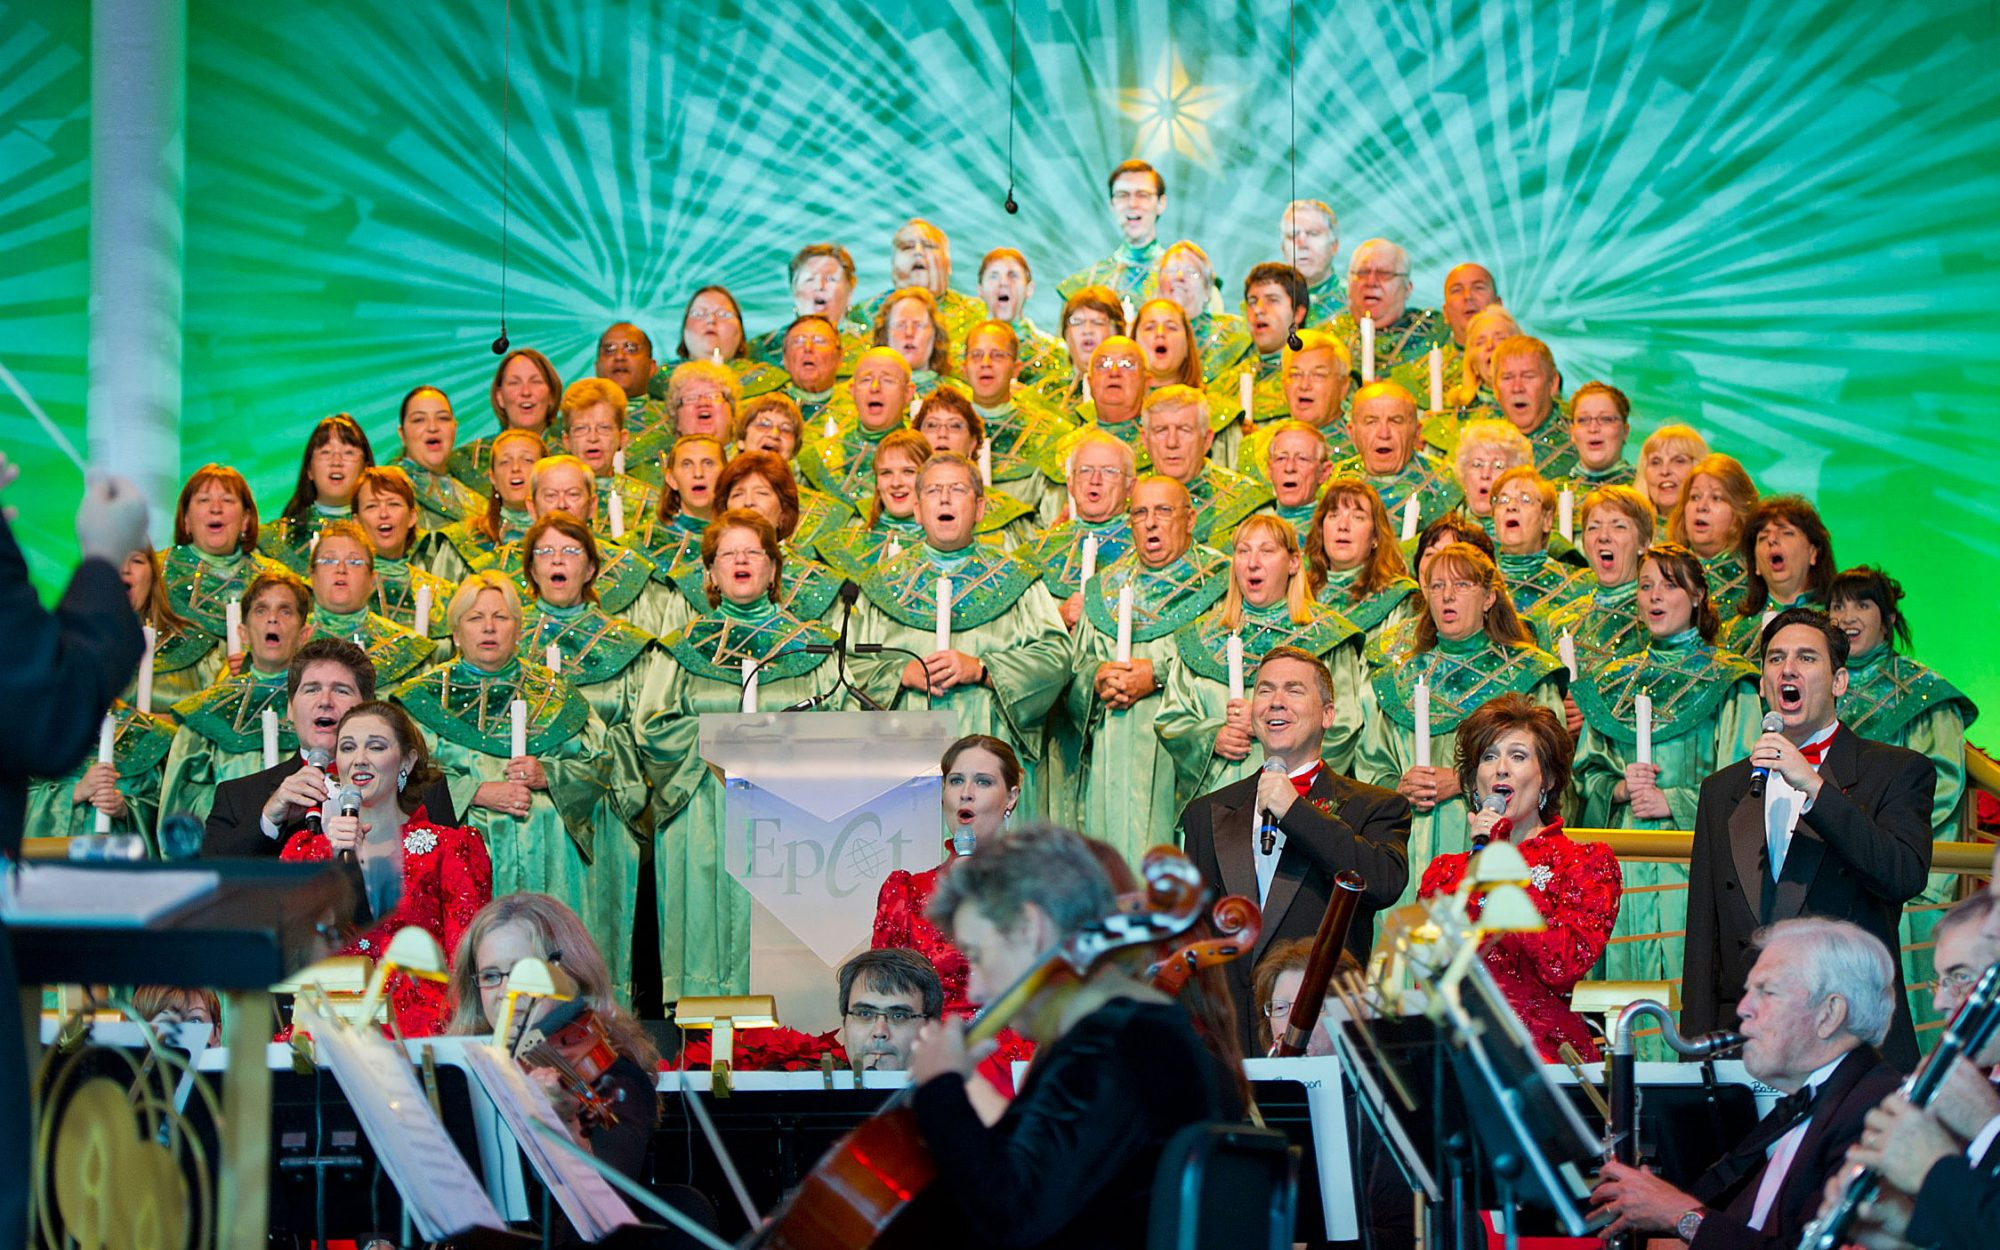 Disney Christmas Travel Tips: Reserve a Seat for the Candlelight Processional